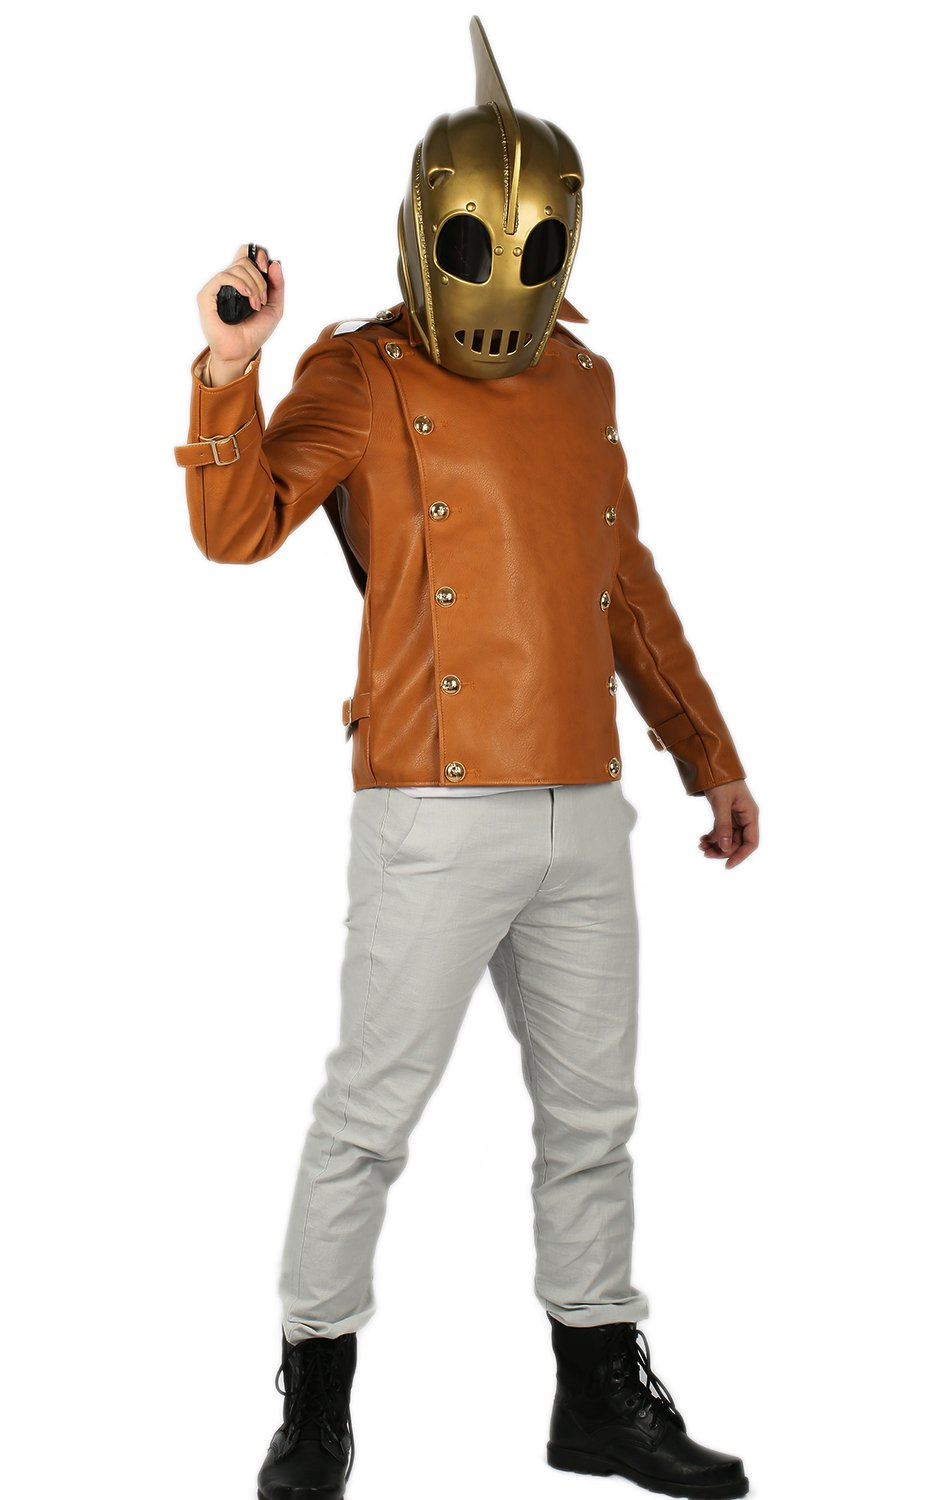 Cliff Secord Jacket Costume Outfit Suit for Adult S by xcoser